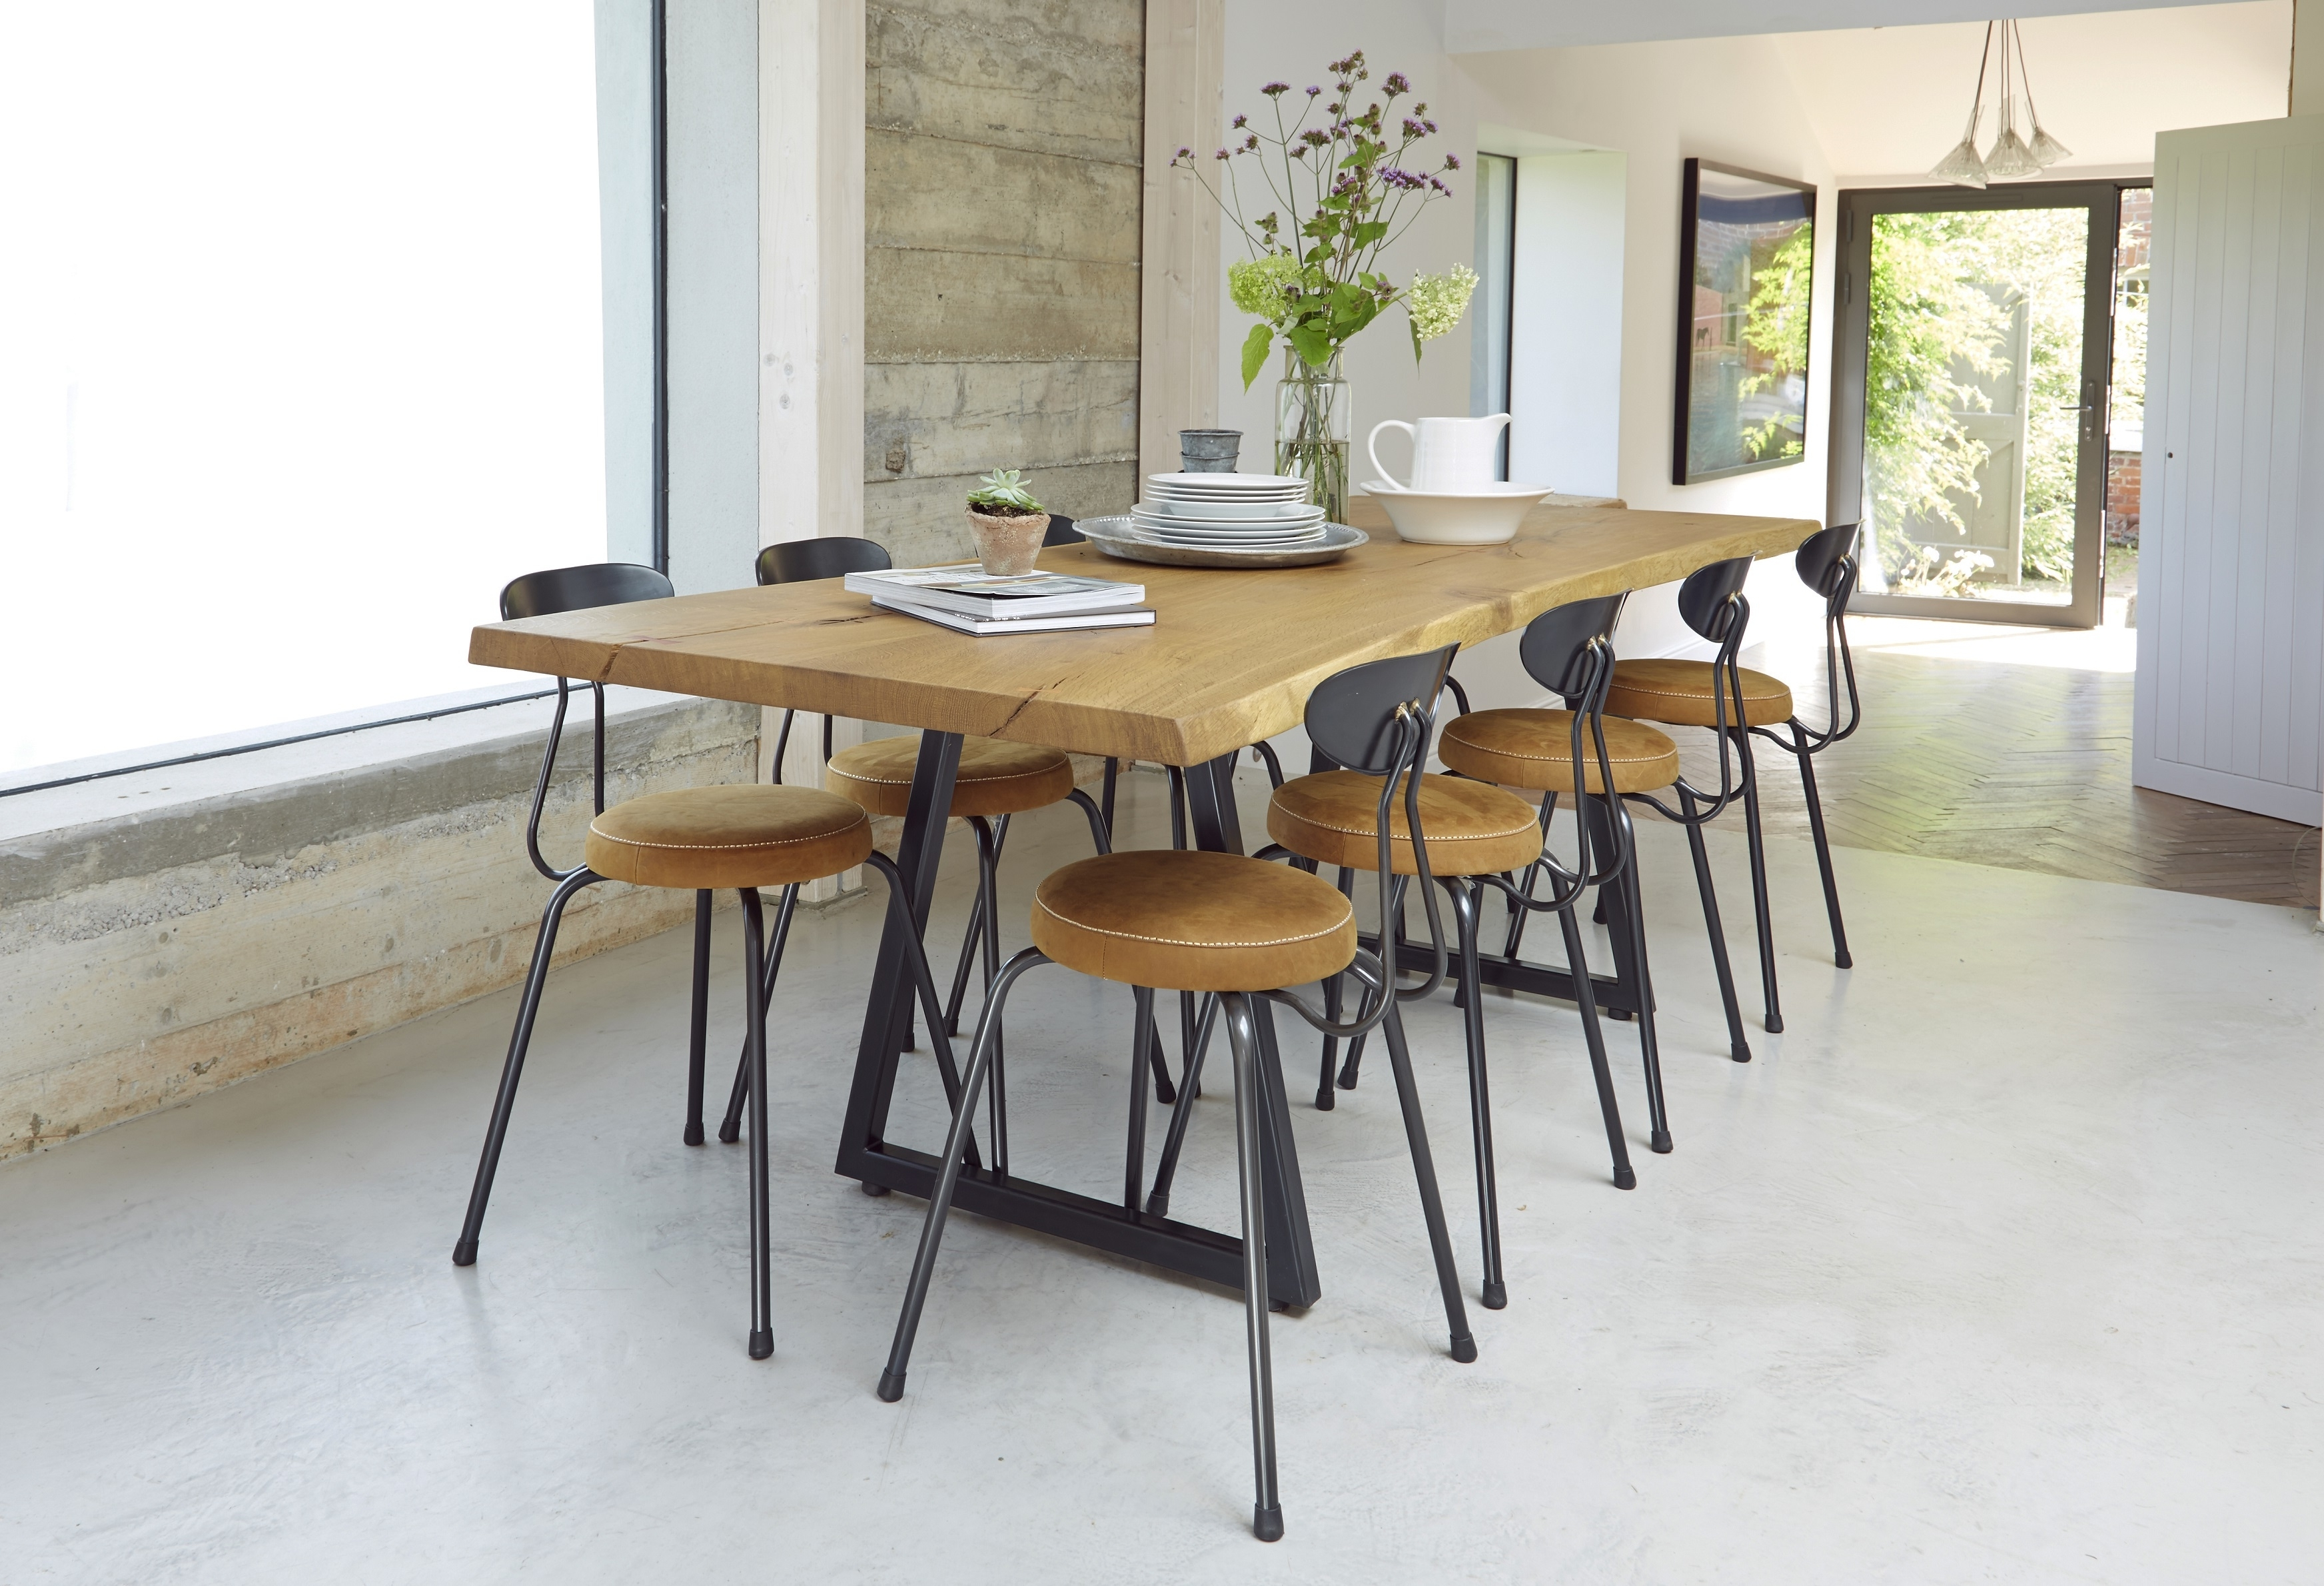 8 Seater Oak Dining Tables in Favorite Dining Room Table : Square Oak Dining Table For 8 Modern Dining